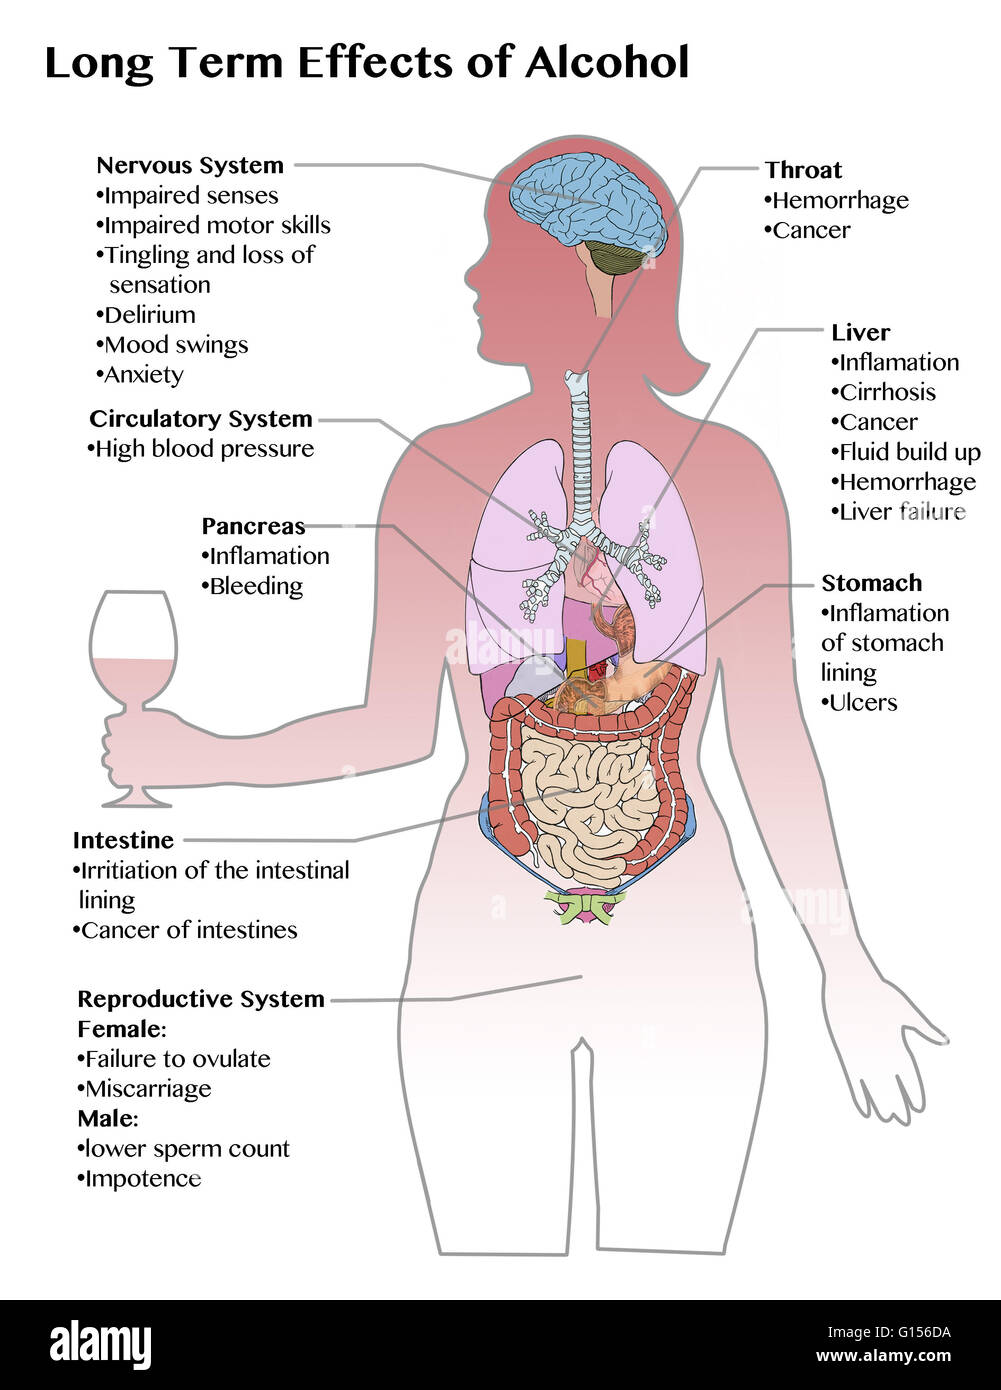 hight resolution of diagram showing the long term effects of excess alcohol consumption stock image